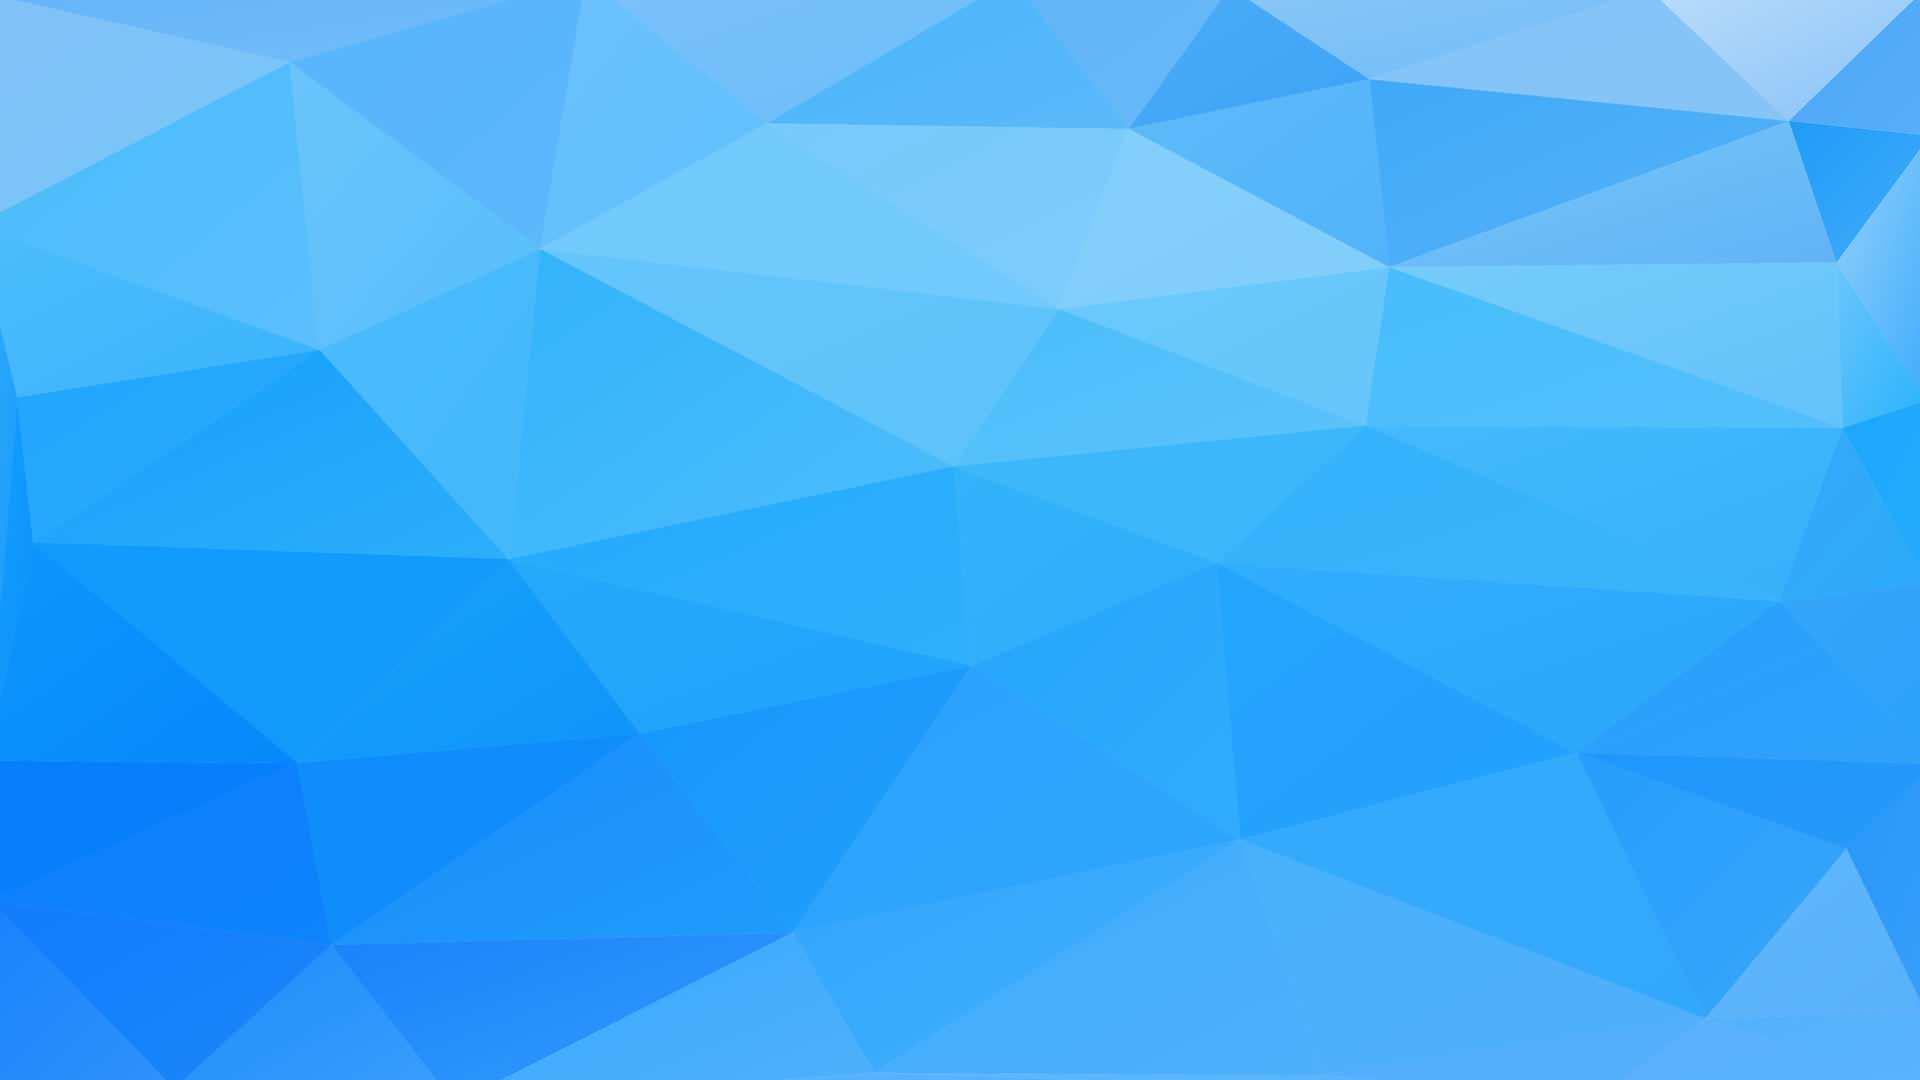 Iphone 5 Wallpaper Cool Pattern Polygon 3d Blue Wallpaper Sc Desktop